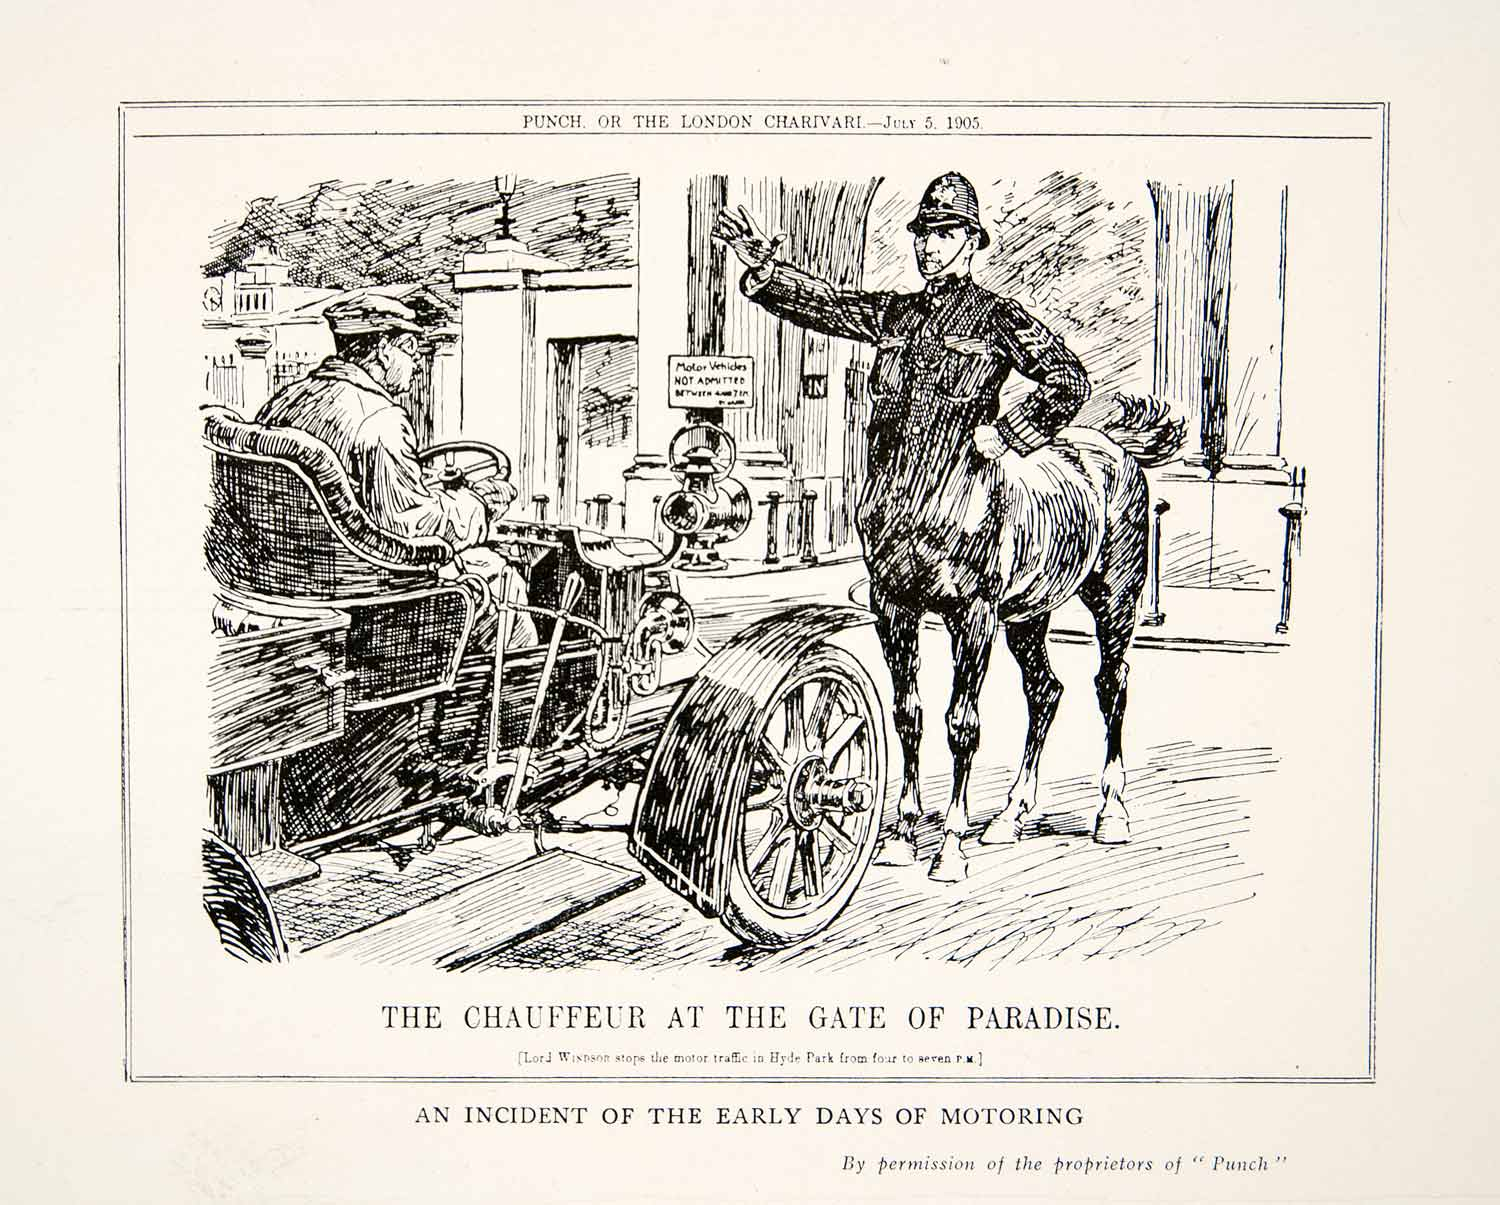 1927 Print London Charivari Punch Antique Car Lord Windsor Centaur Bobby XEQ4